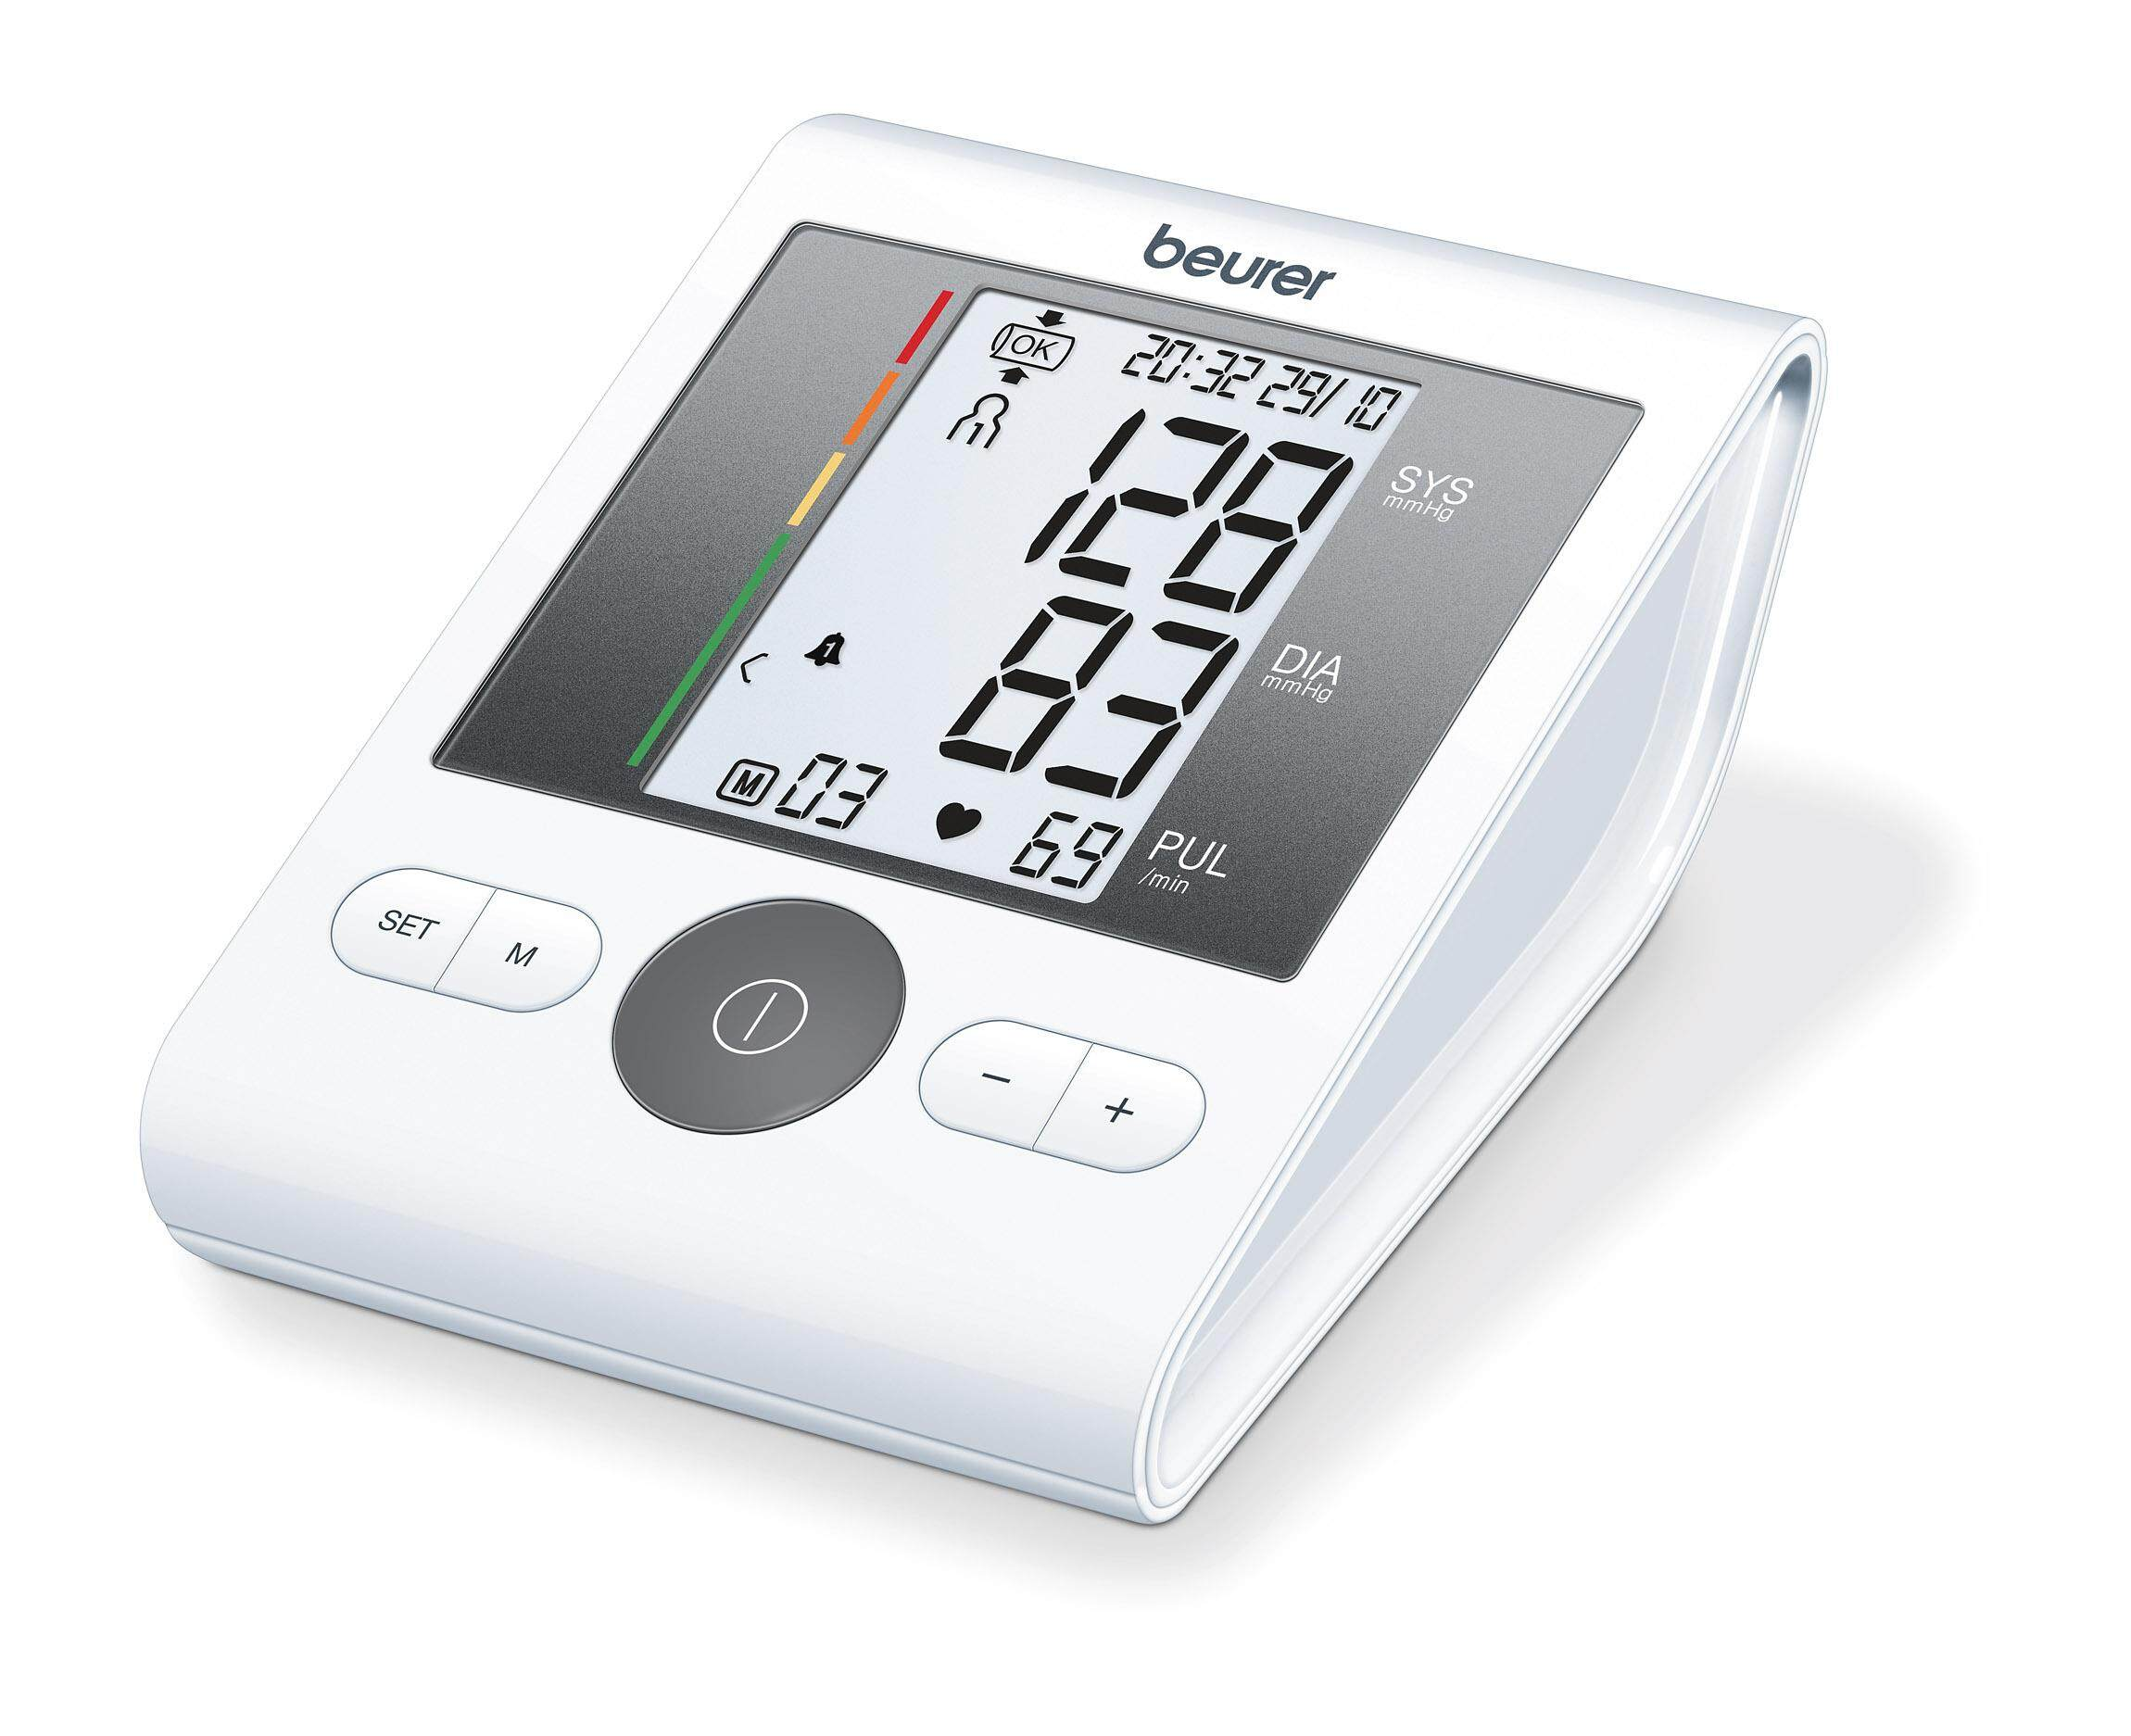 Beurer - Upper arm blood pressure monitor - B28